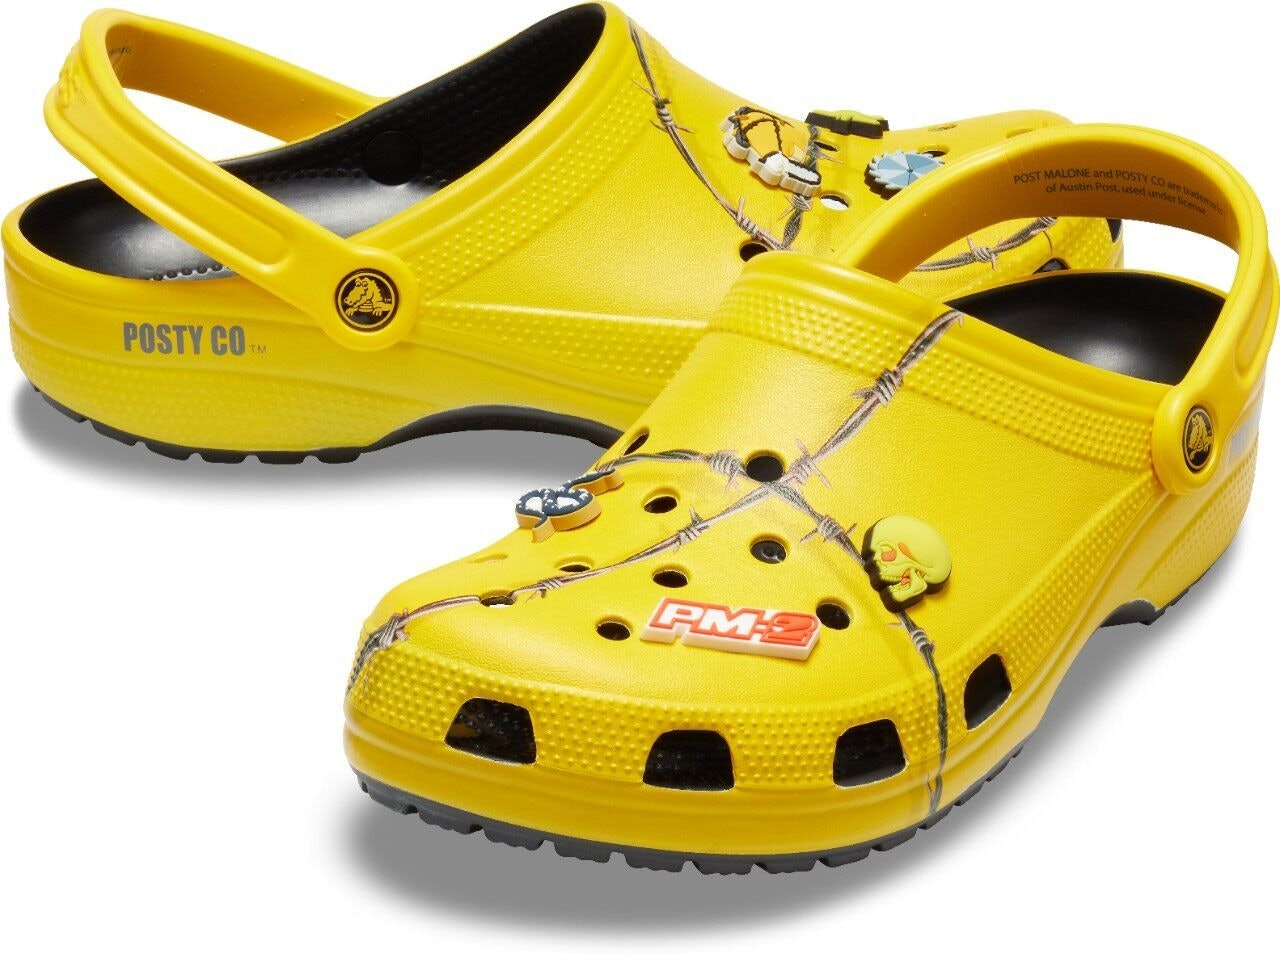 6aa635f13 Where Can You Buy The Post Malone X Crocs Barbed Wire Clogs  The Quirky  Shoes Are Sure To Sell Out